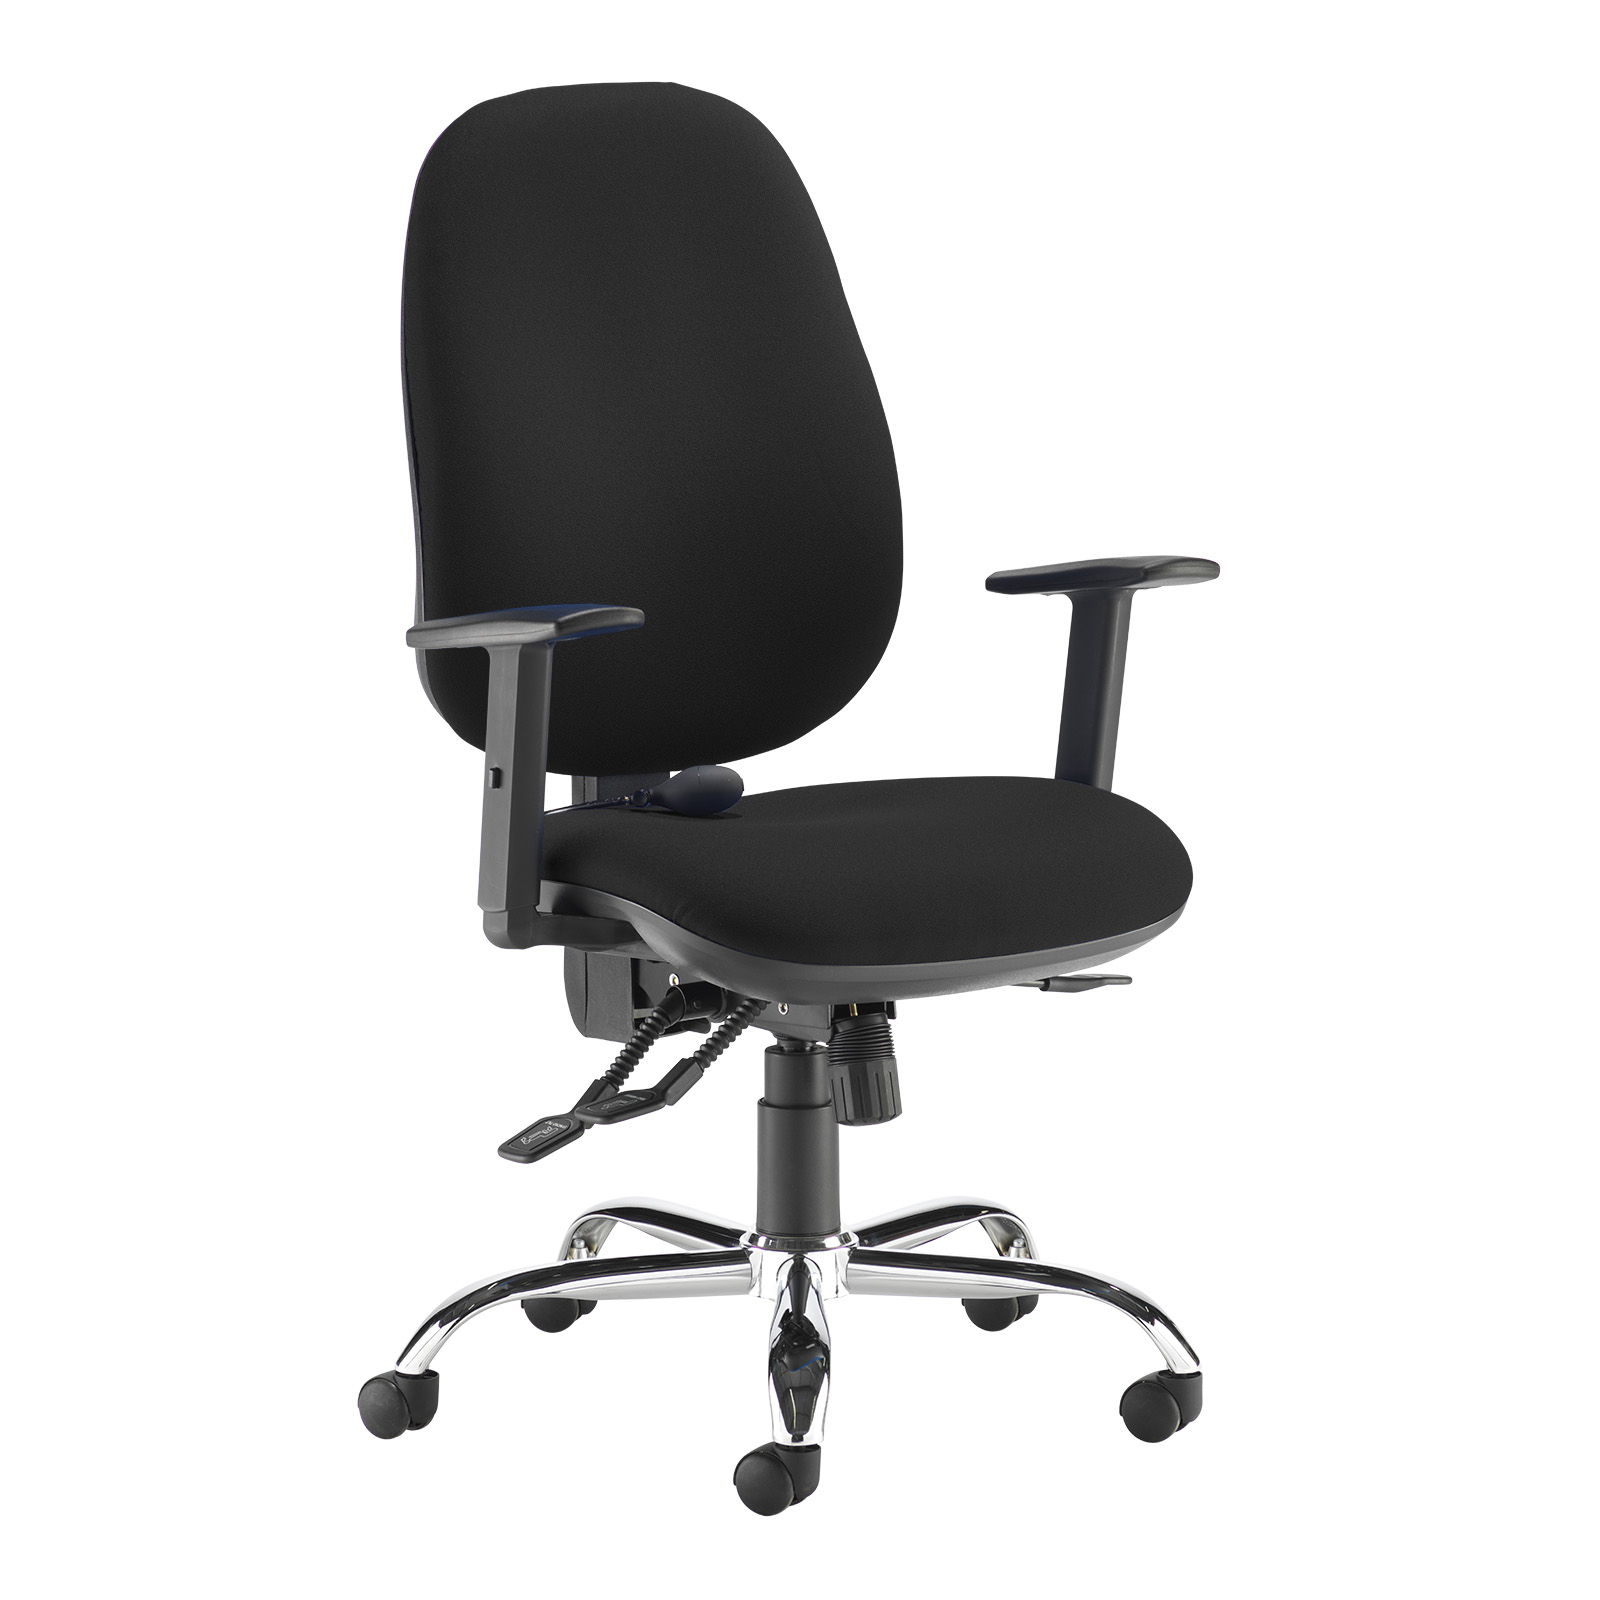 Desk Chairs Jota ergo 24hr ergonomic asynchro task chair - black